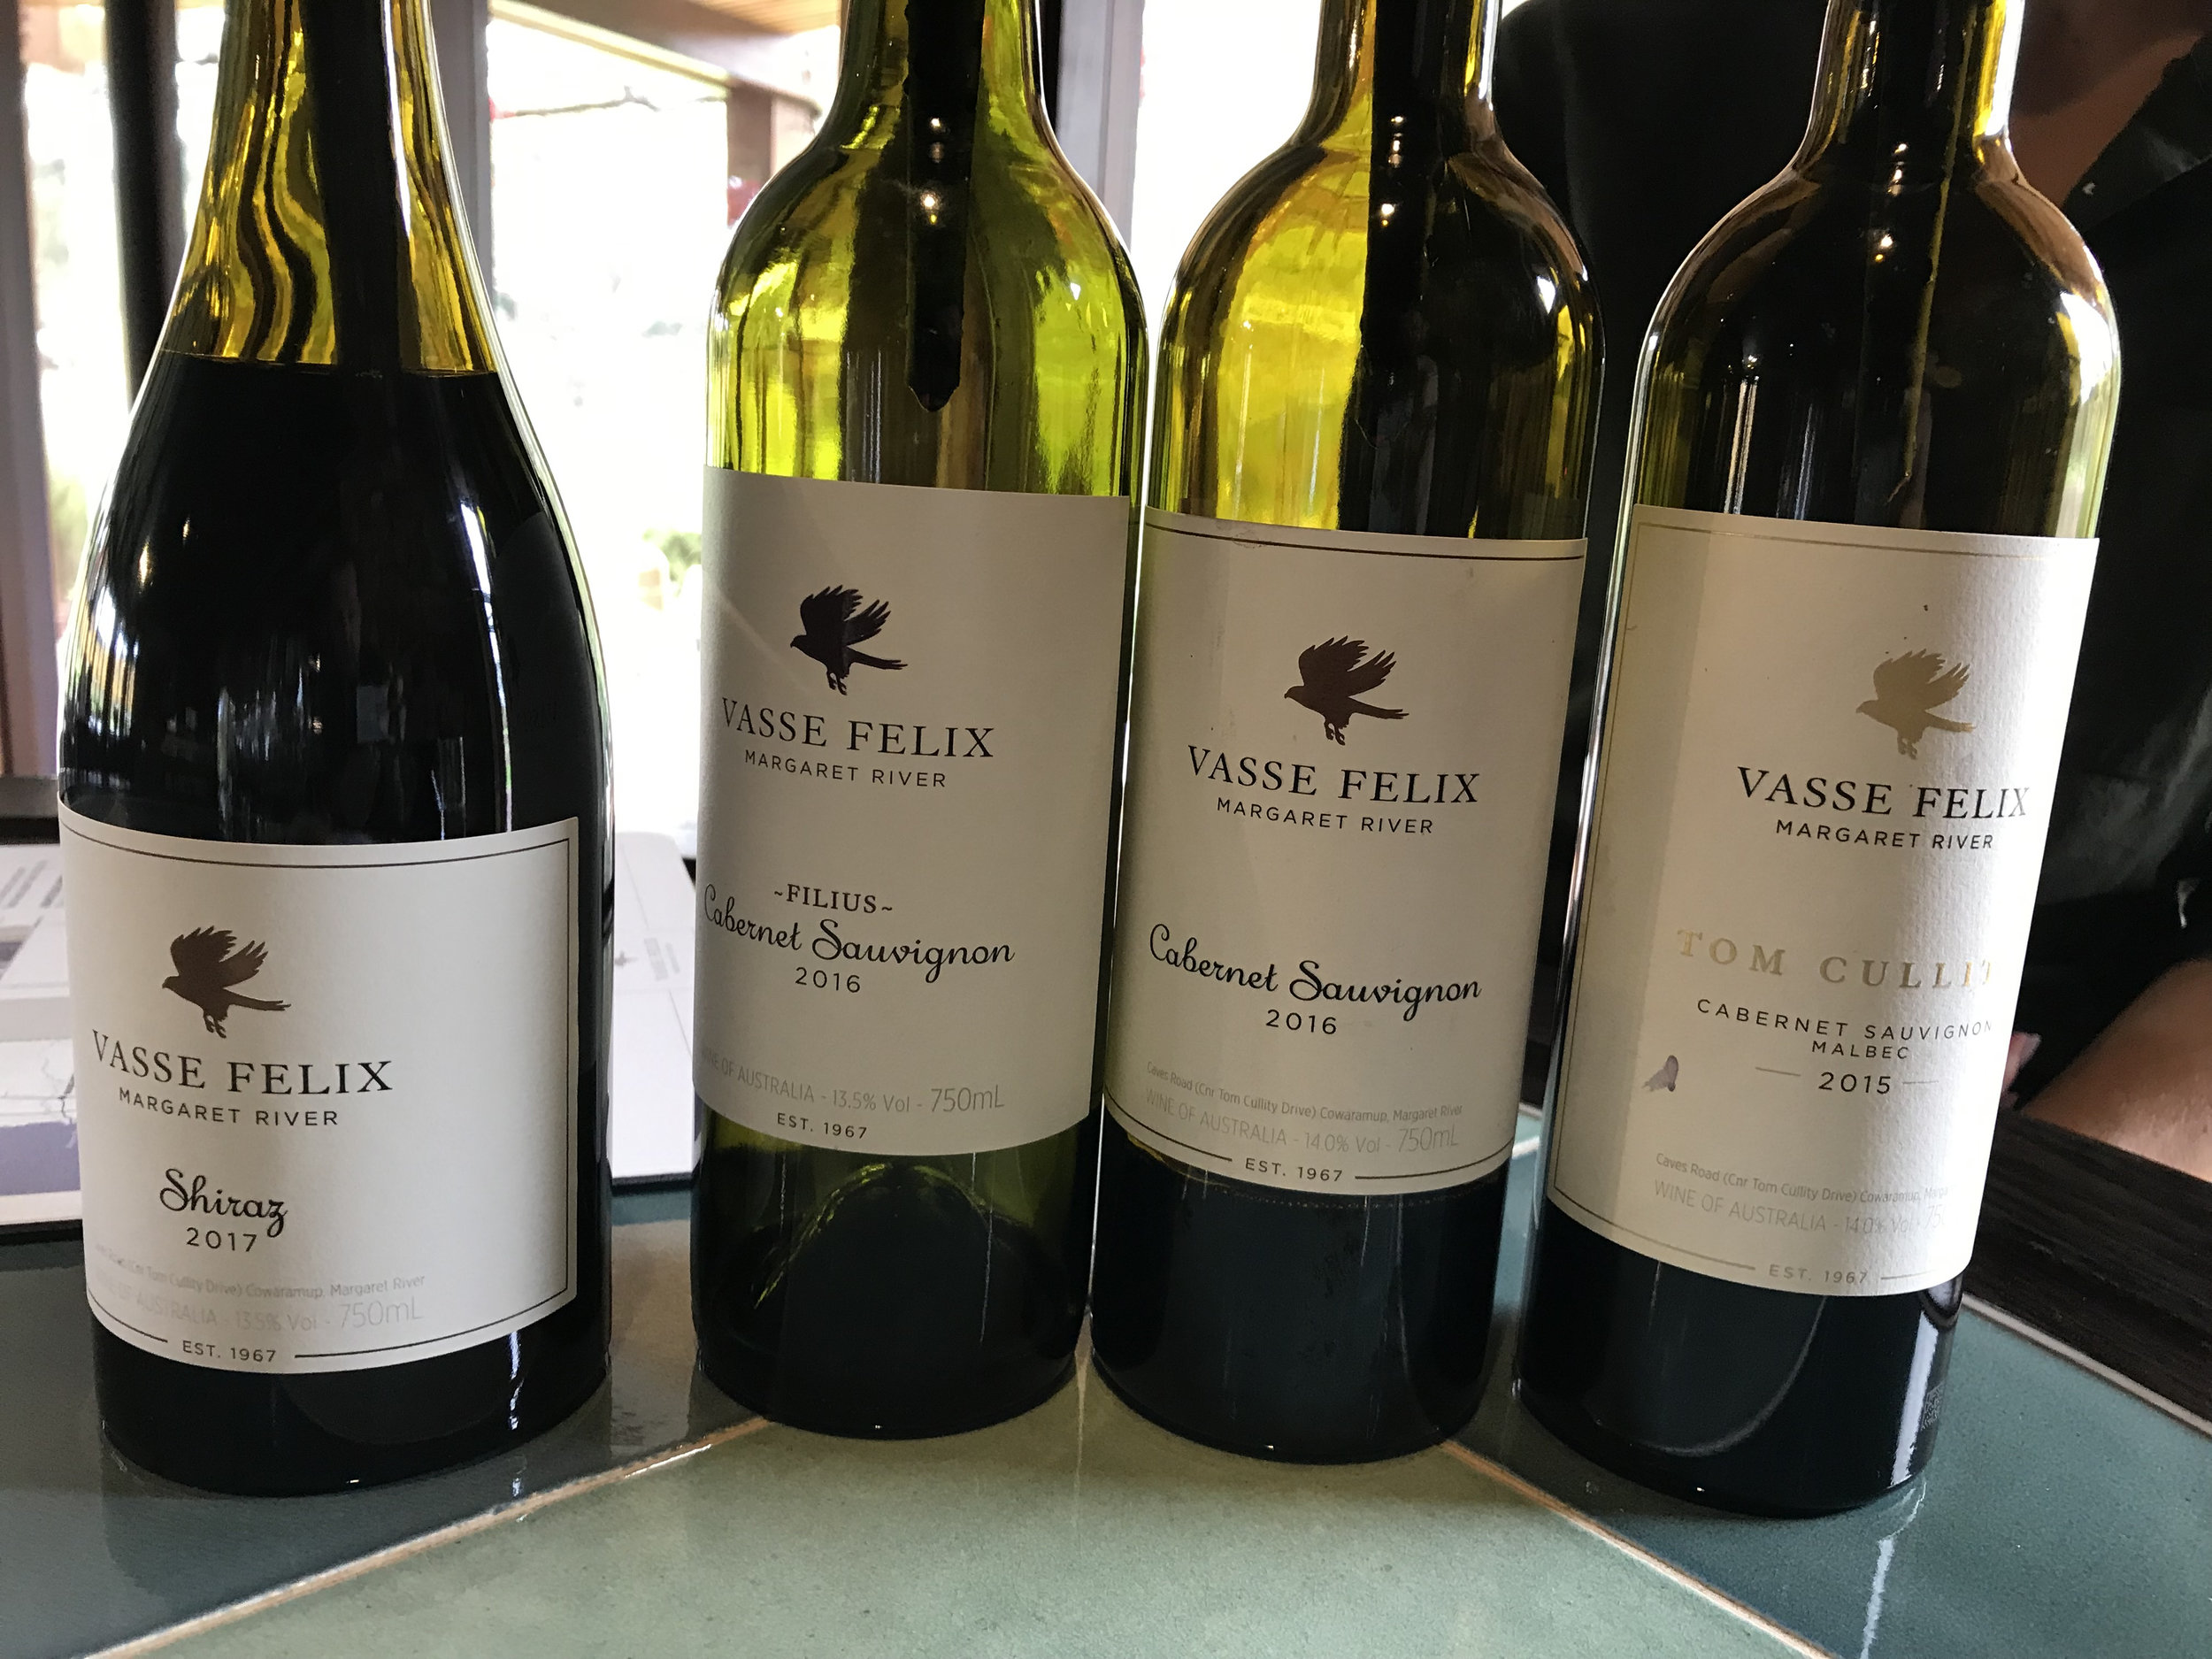 A delicious selection of reds at Vasse Felix.